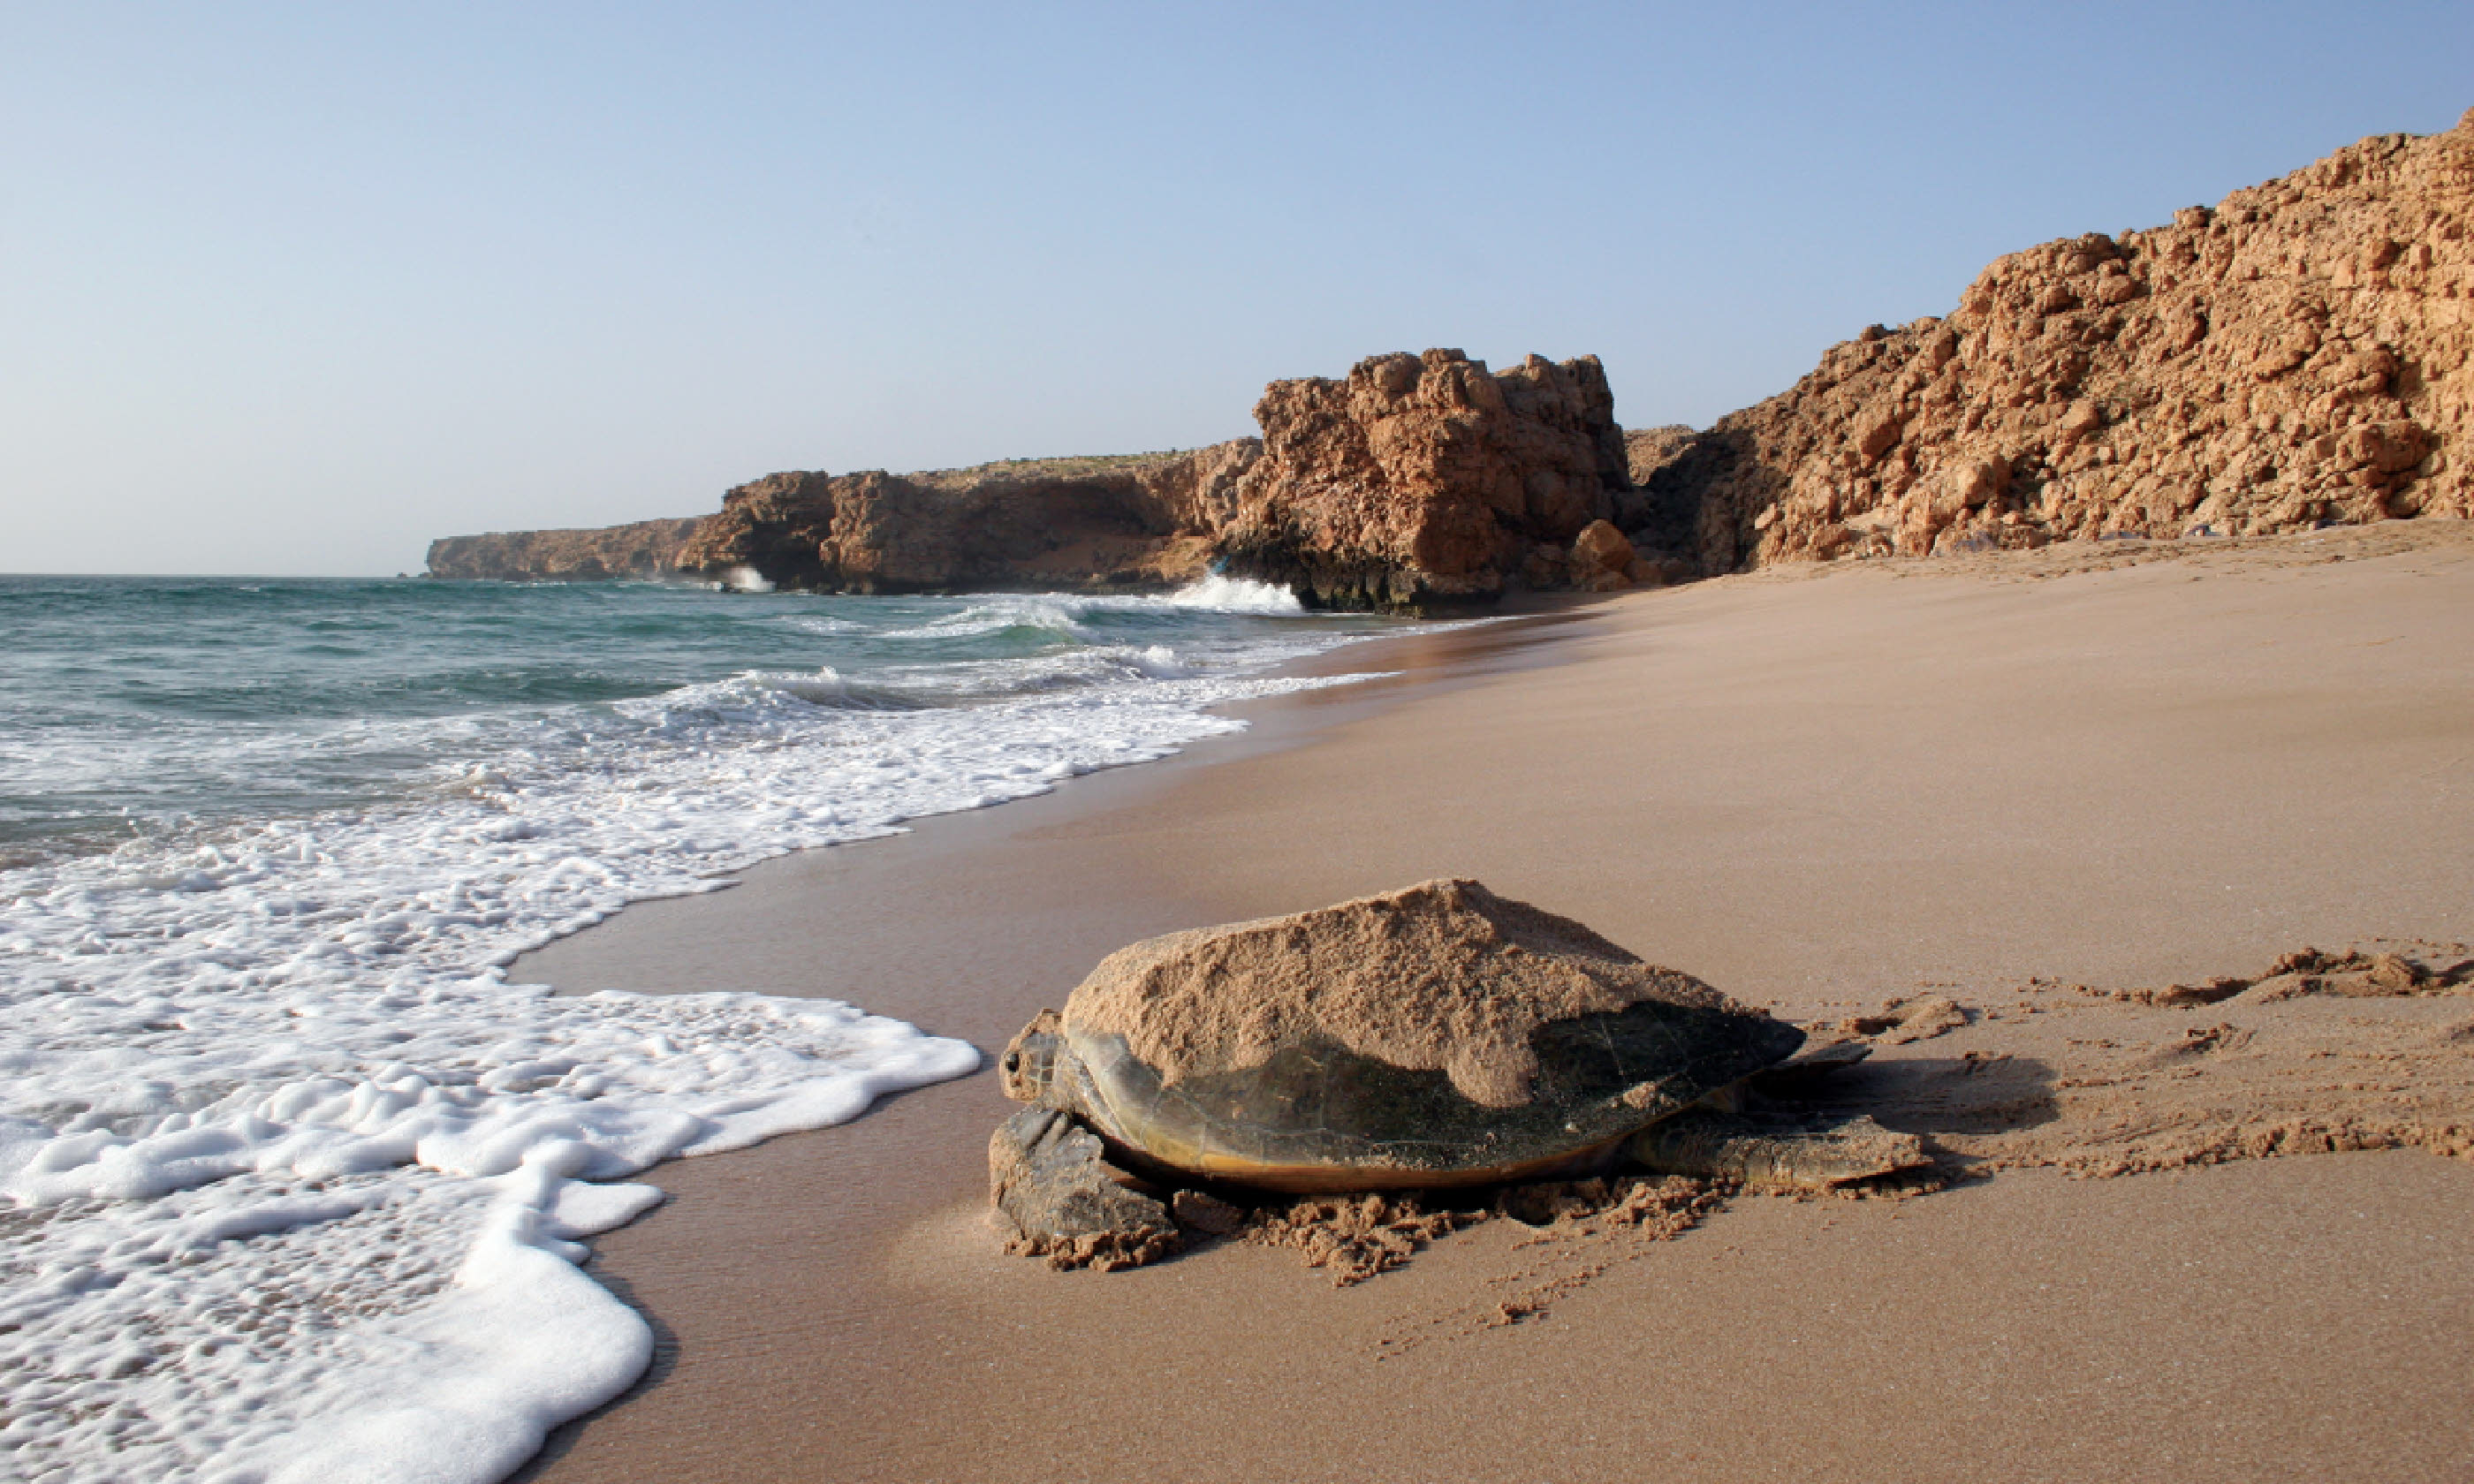 Turtle watching, Ras Al Jinz